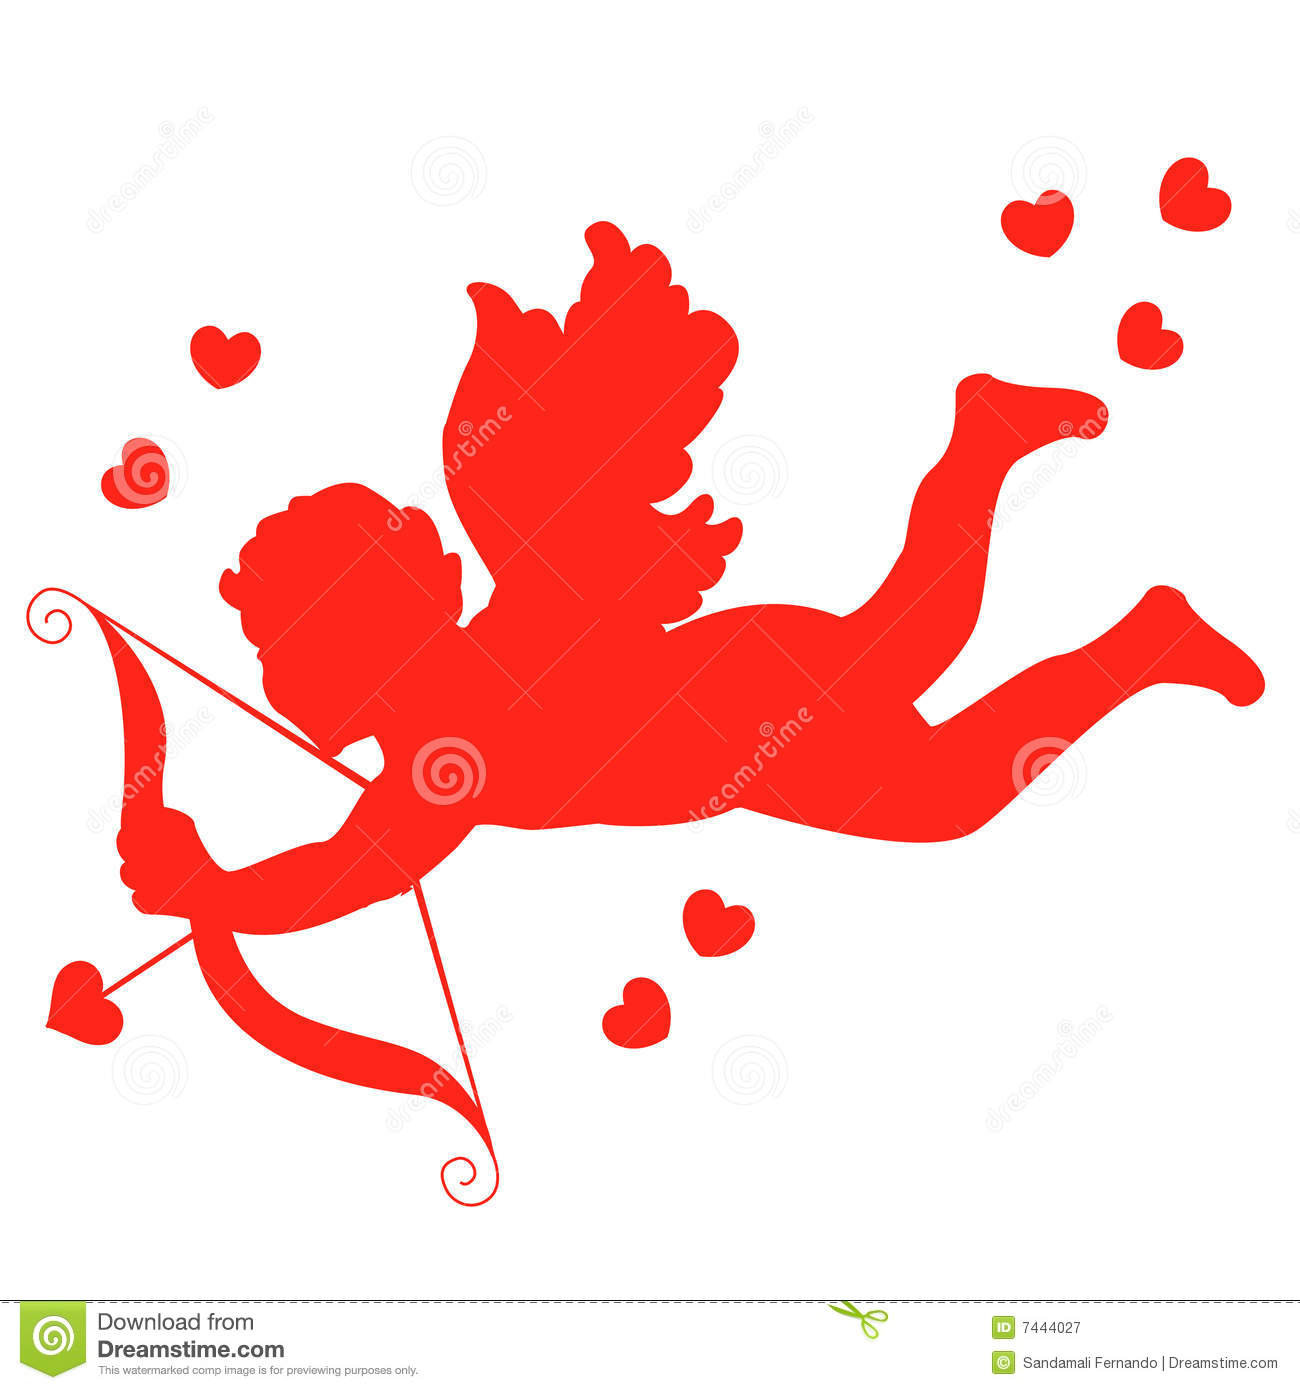 Cupid with bow and arrow illustration with red hearts.